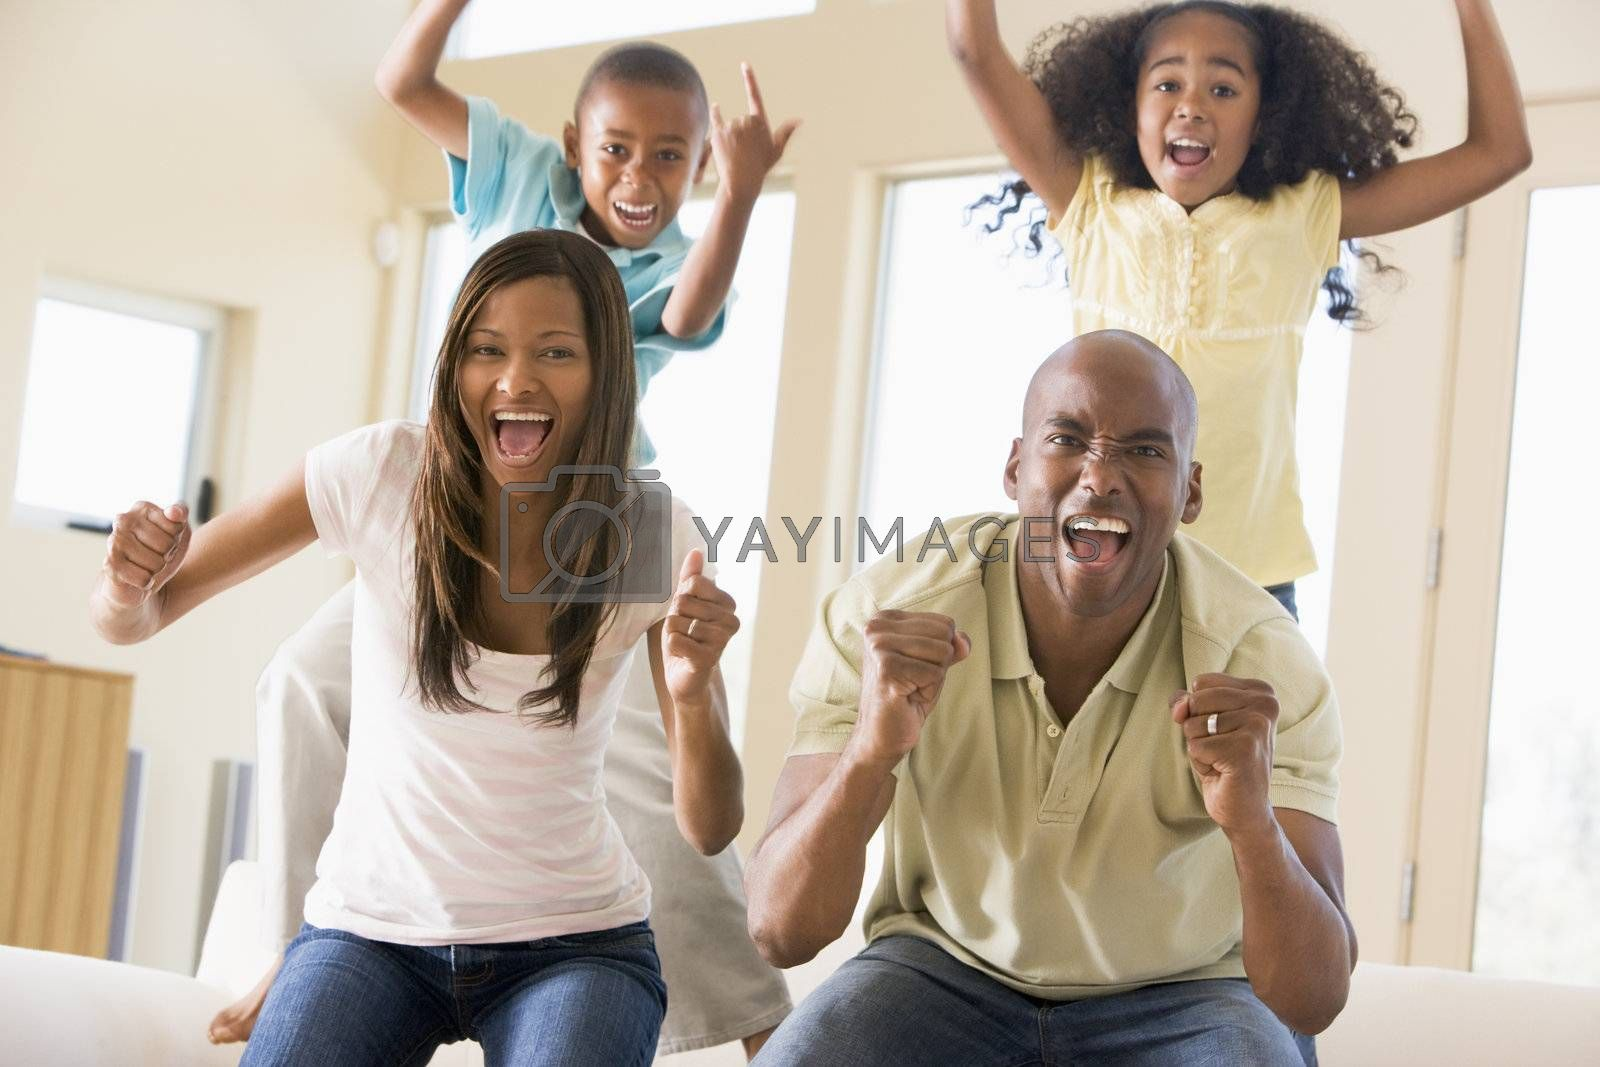 Family in living room cheering and smiling by MonkeyBusiness